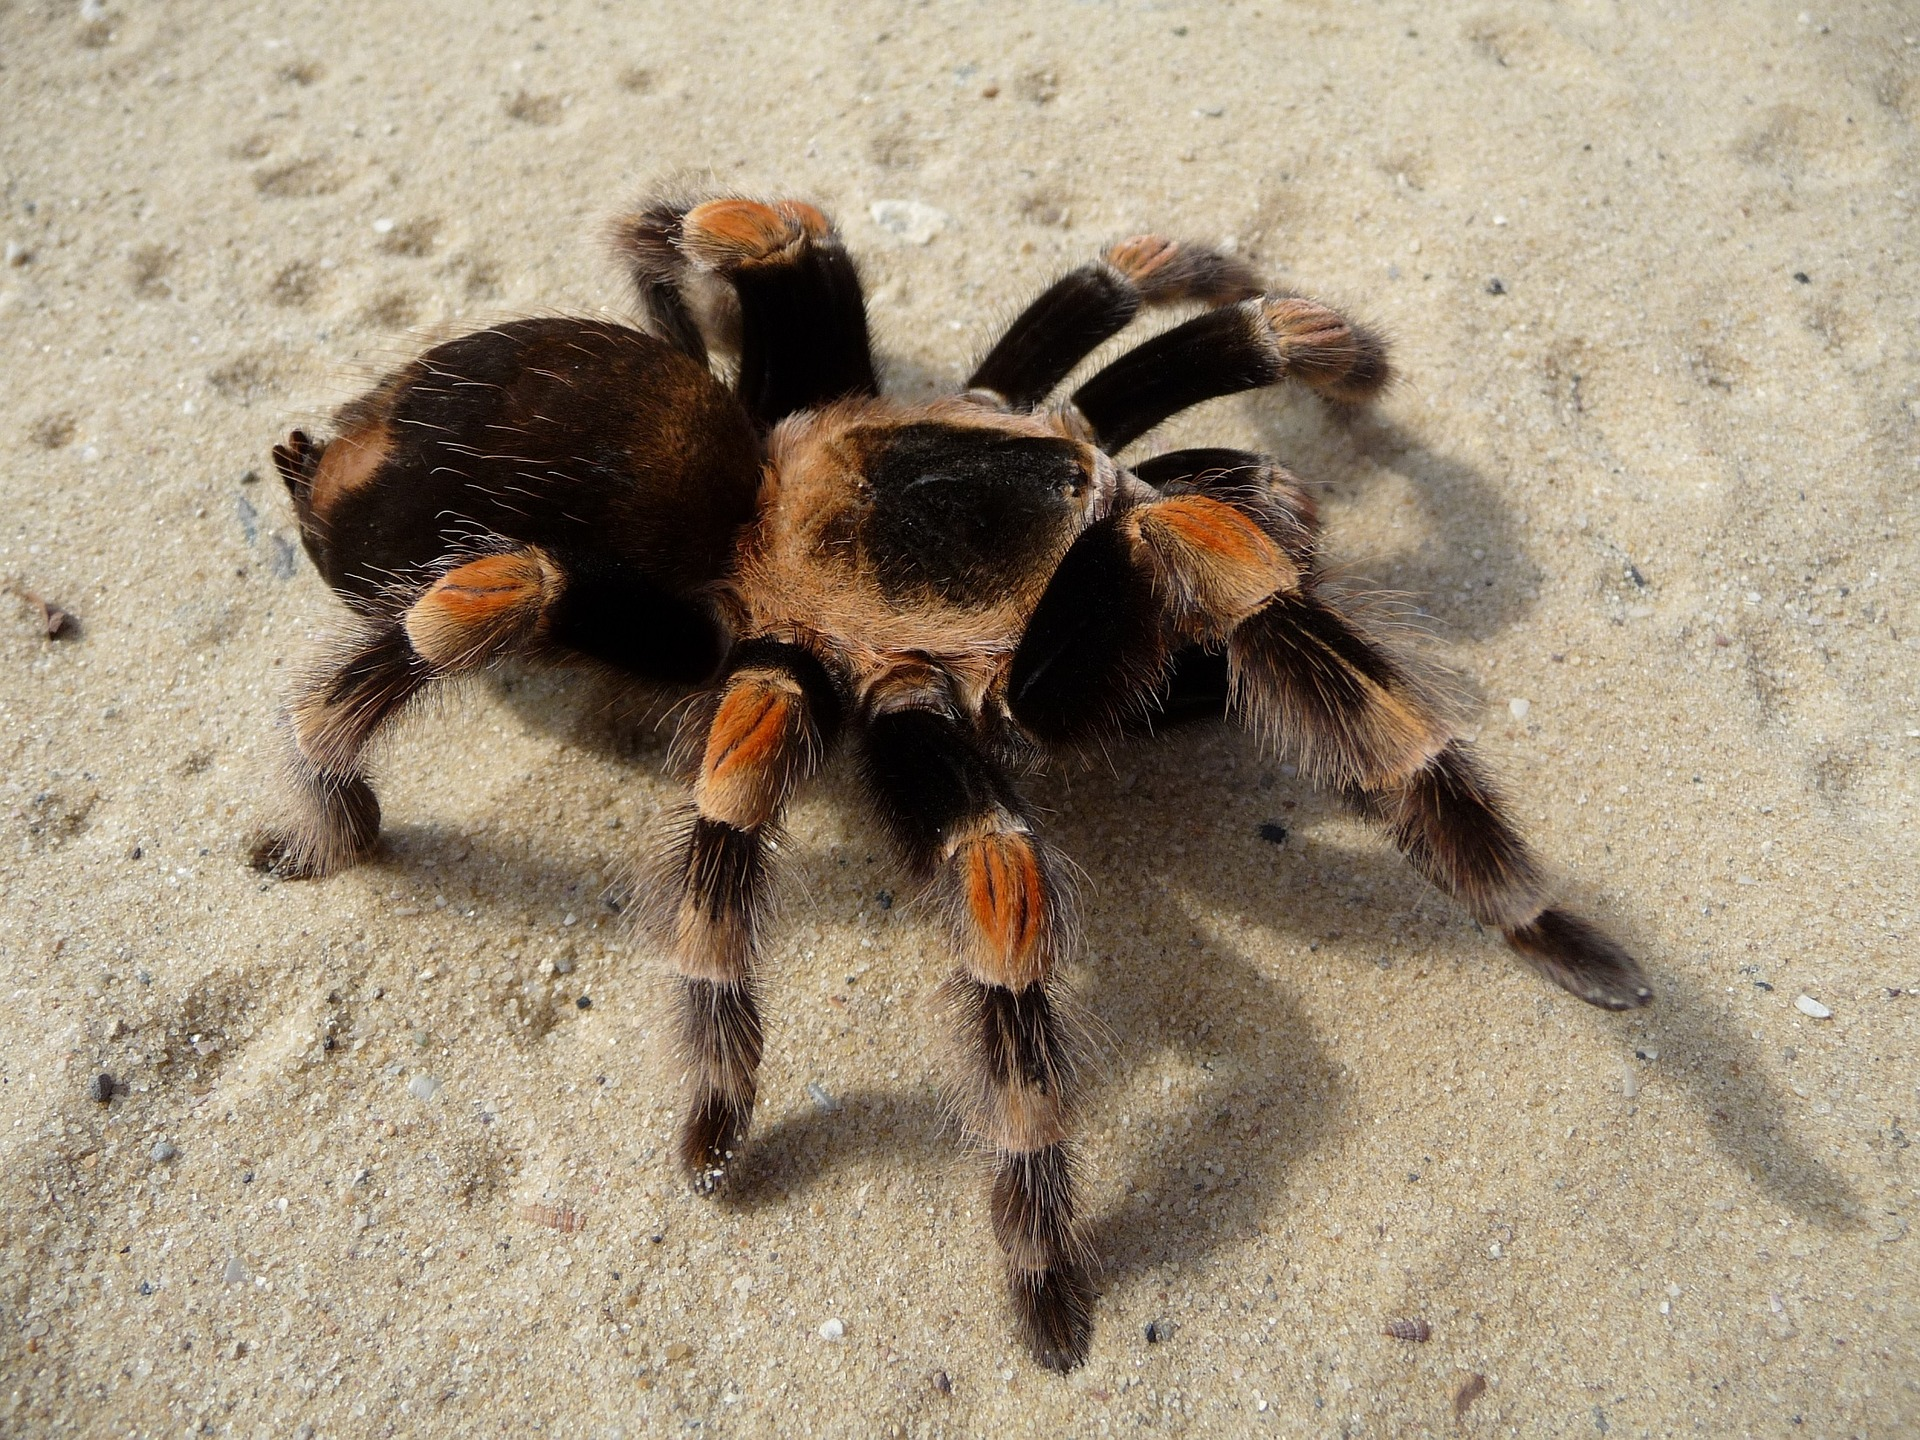 Photo of tarantula on sand